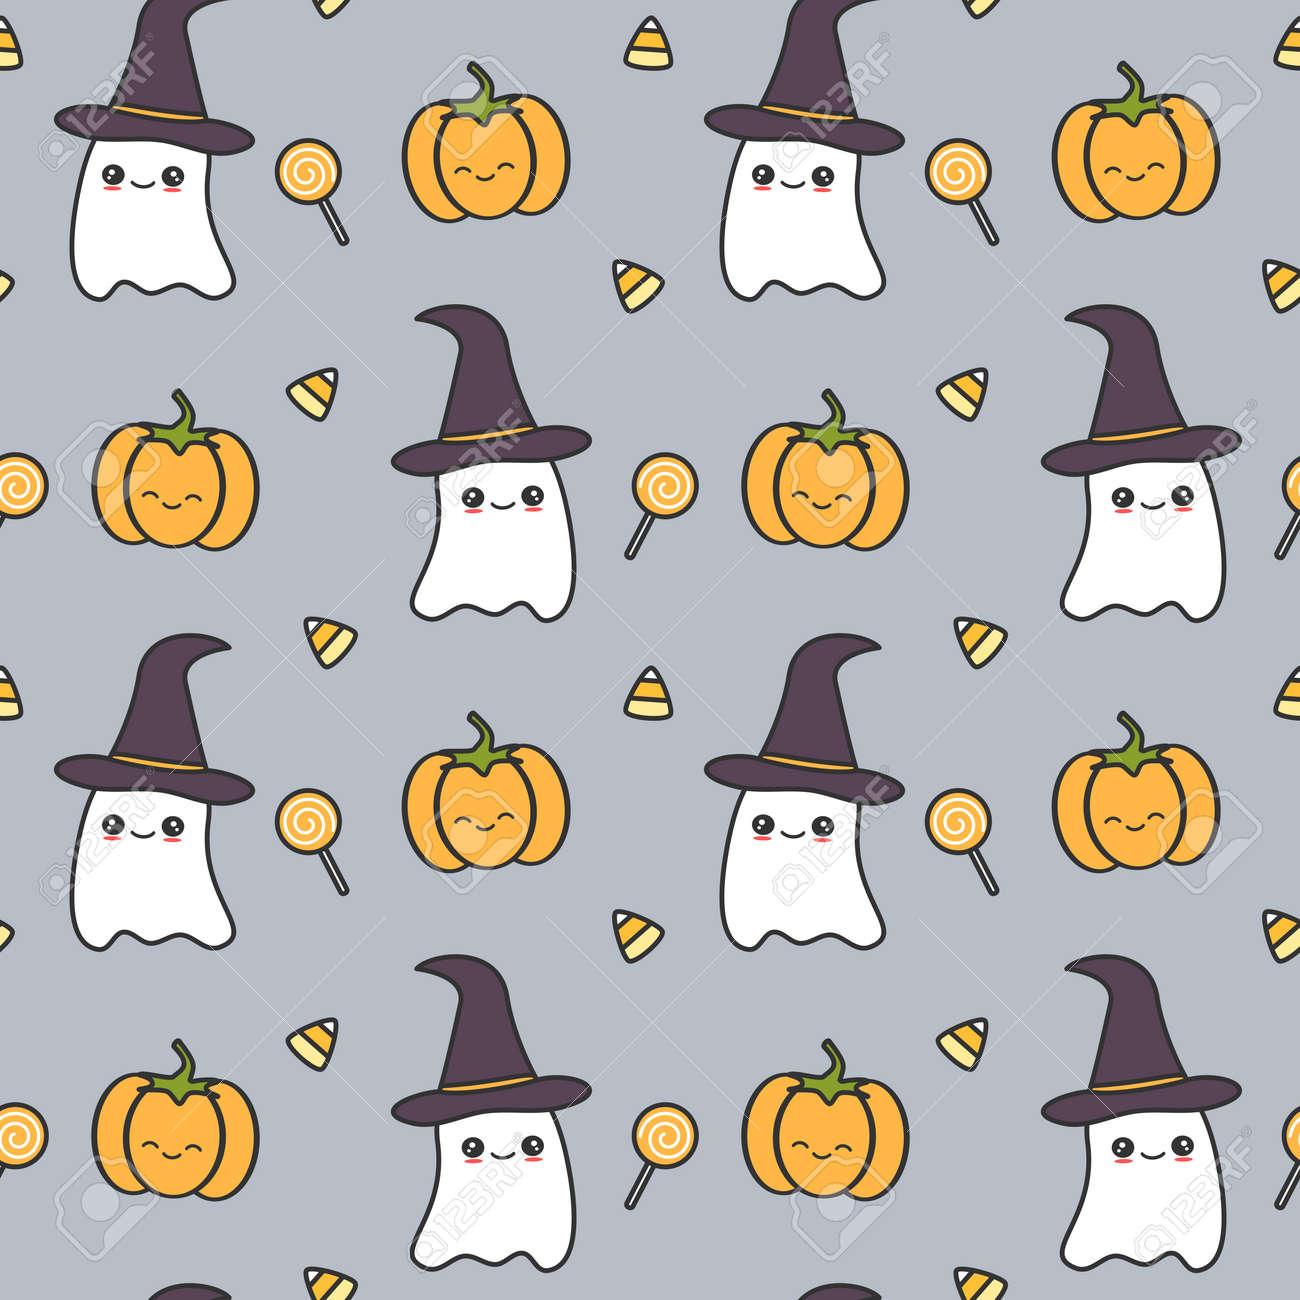 Cute Halloween Seamless Pattern Vector Illustration With Ghost Royalty Free Cliparts Vectors And Stock Illustration Image 106446874